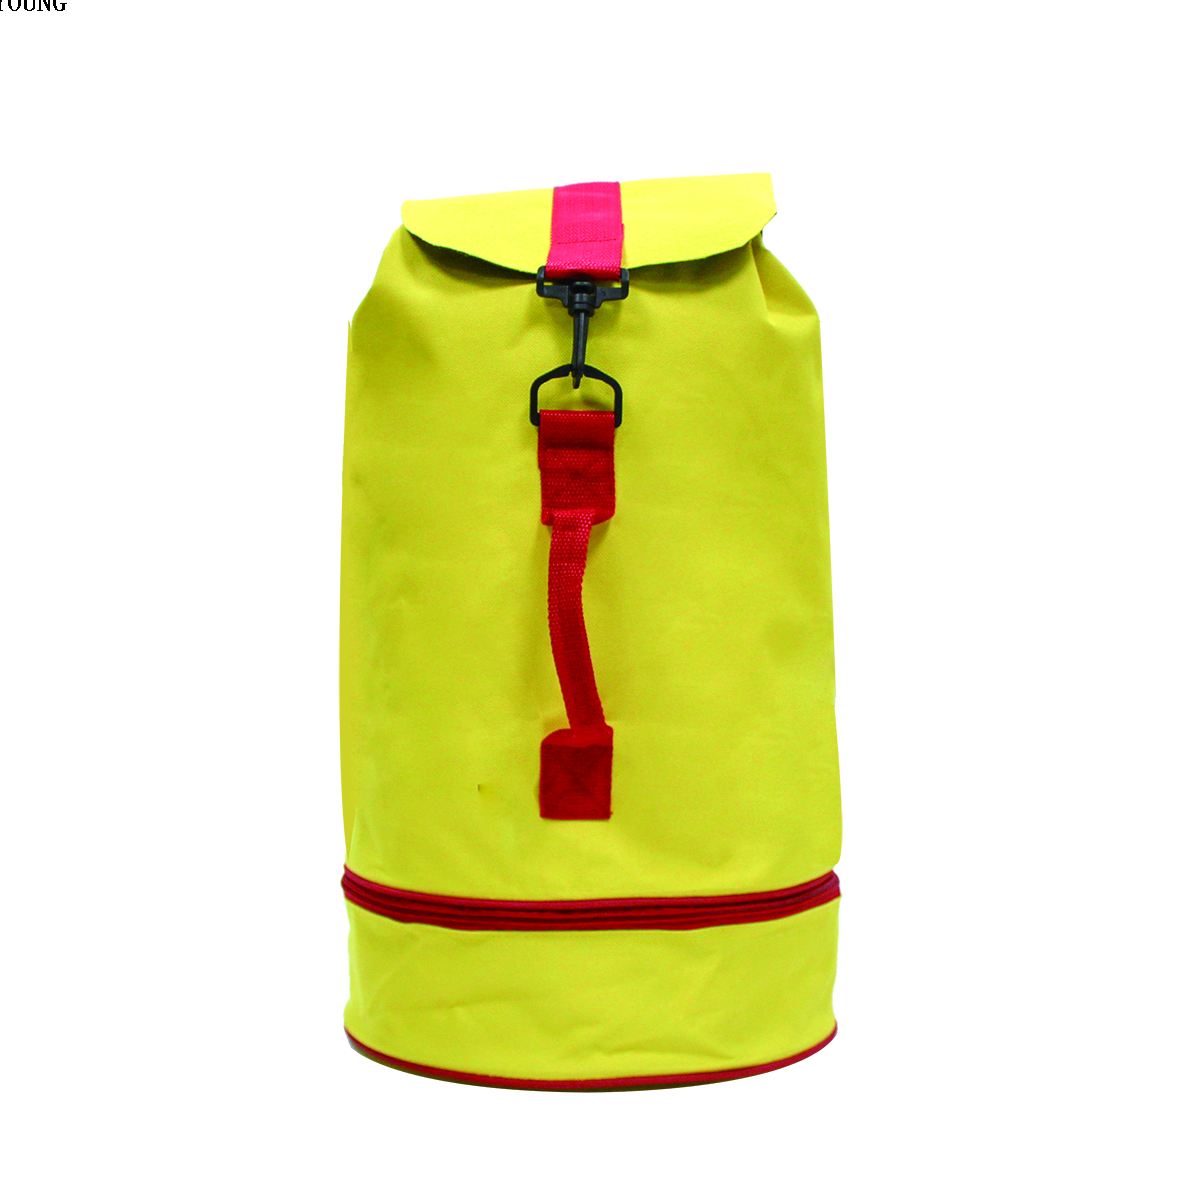 Fashion Outdoor Bucket Duffel Bag with Flap